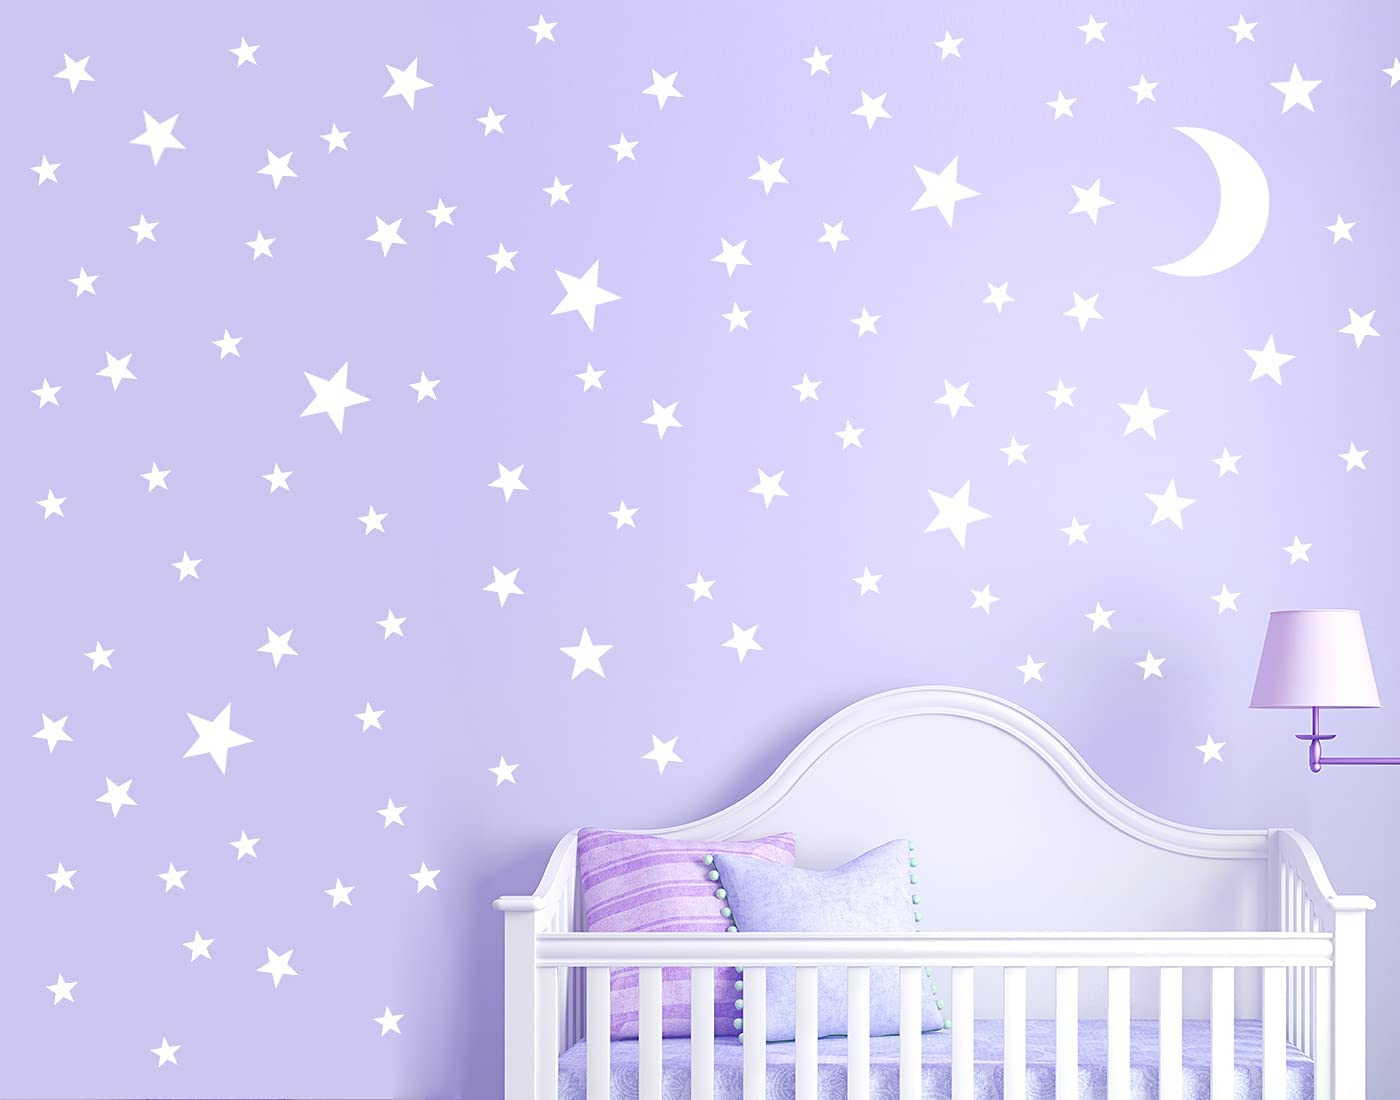 Giyyomtr Stars Wall Decals -350Pcs Baby Nursery Star Wall Stckers Removable Mural Decor for Girls Kids Beding Room Decoration (White)